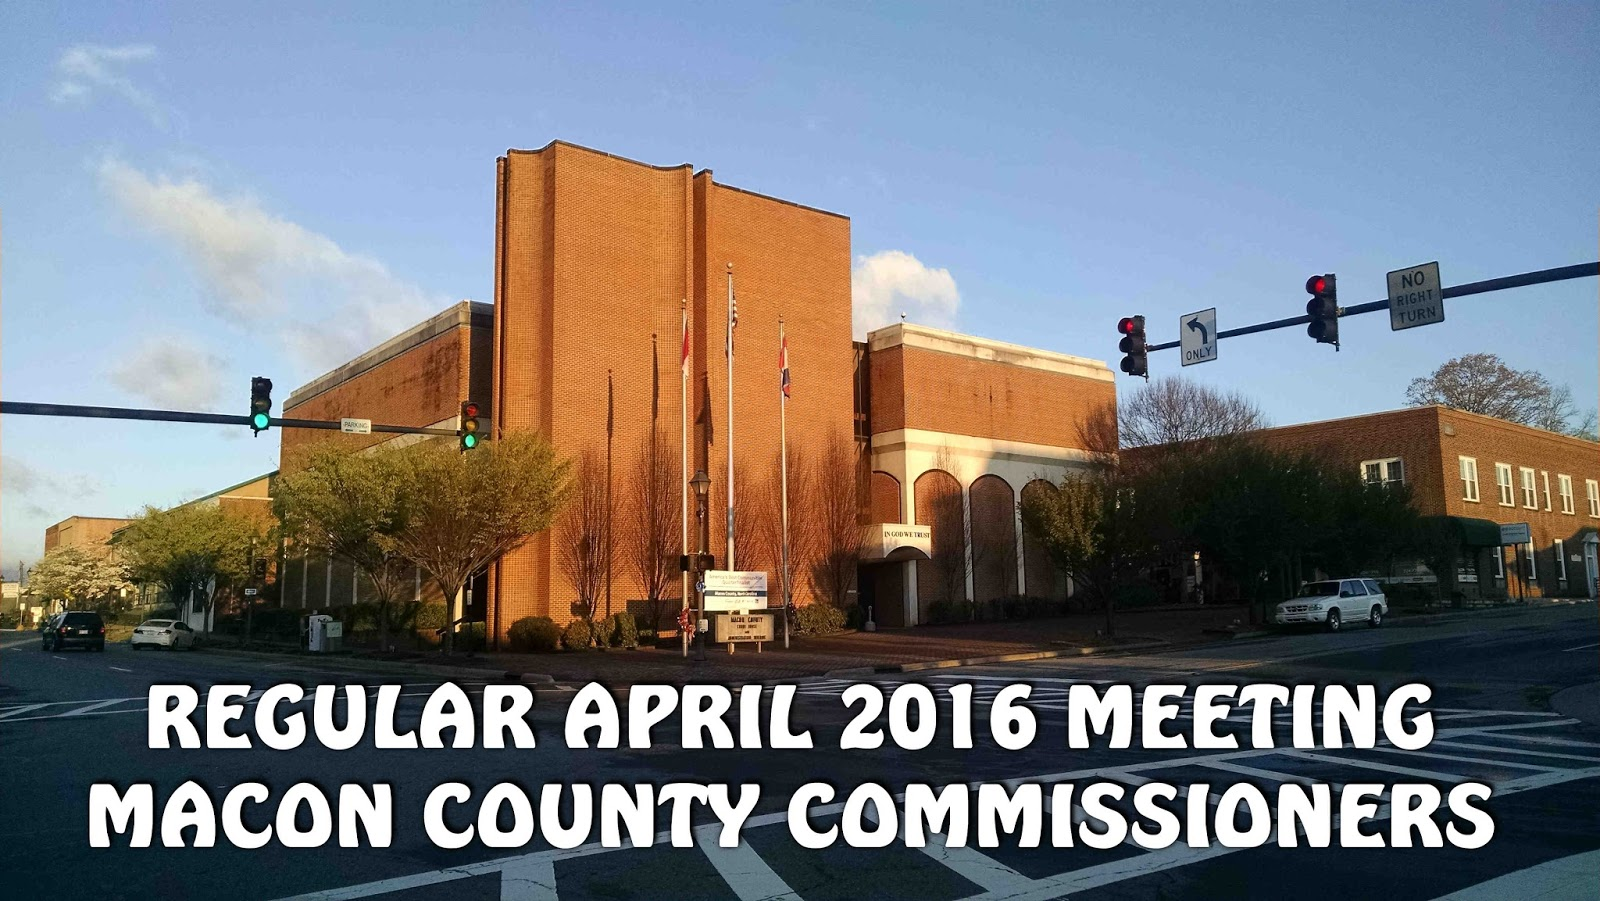 Regular April 2016 Meeting of the Macon County Commissioners